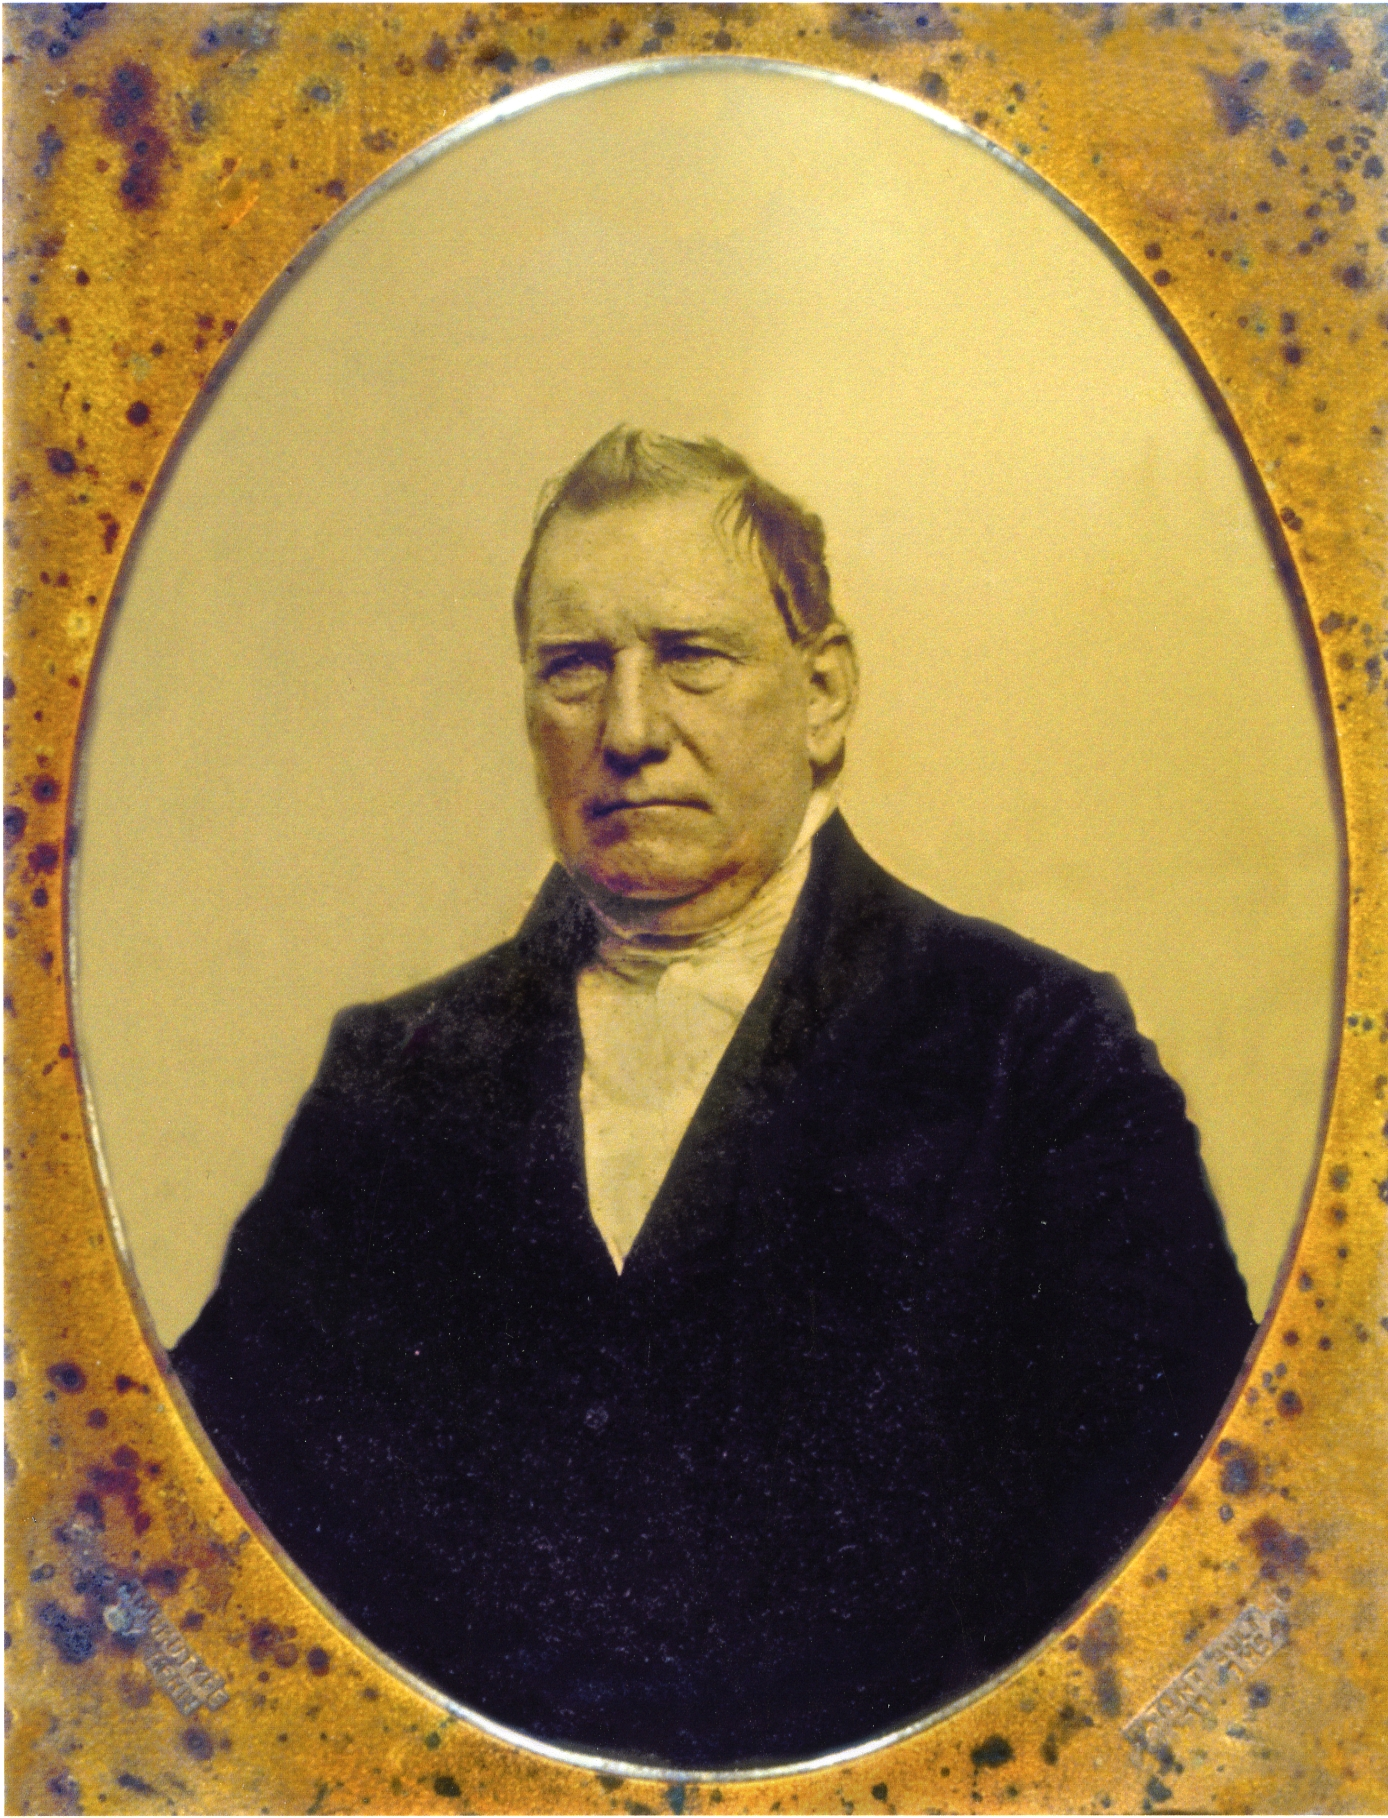 Picture of Charles McMicken: An older man with a white collared shirt on and a black blazer with a creme background.